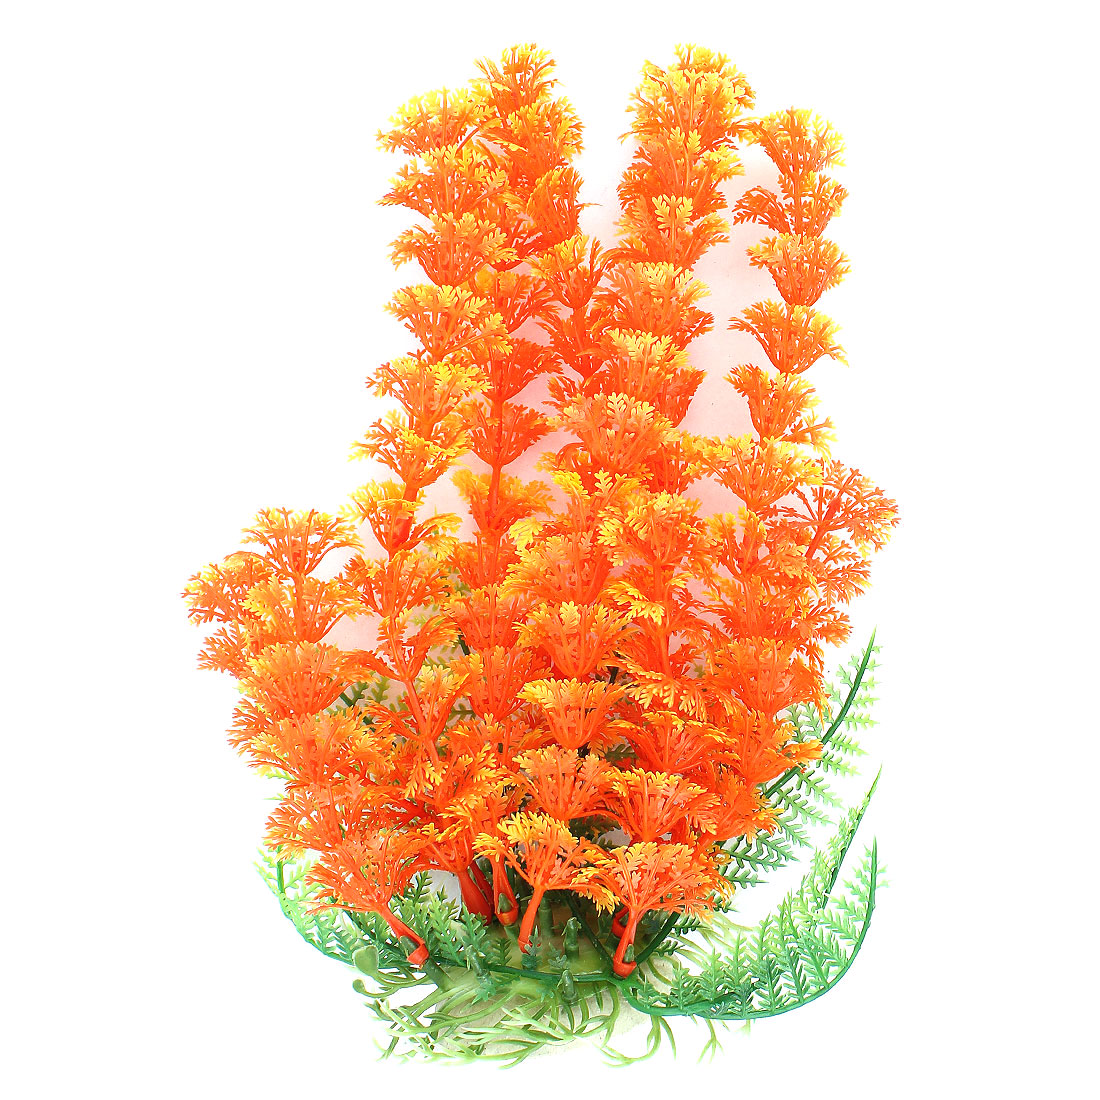 Landscape Aquascaping Aquarium Plant Underwater Grass Decor Orange